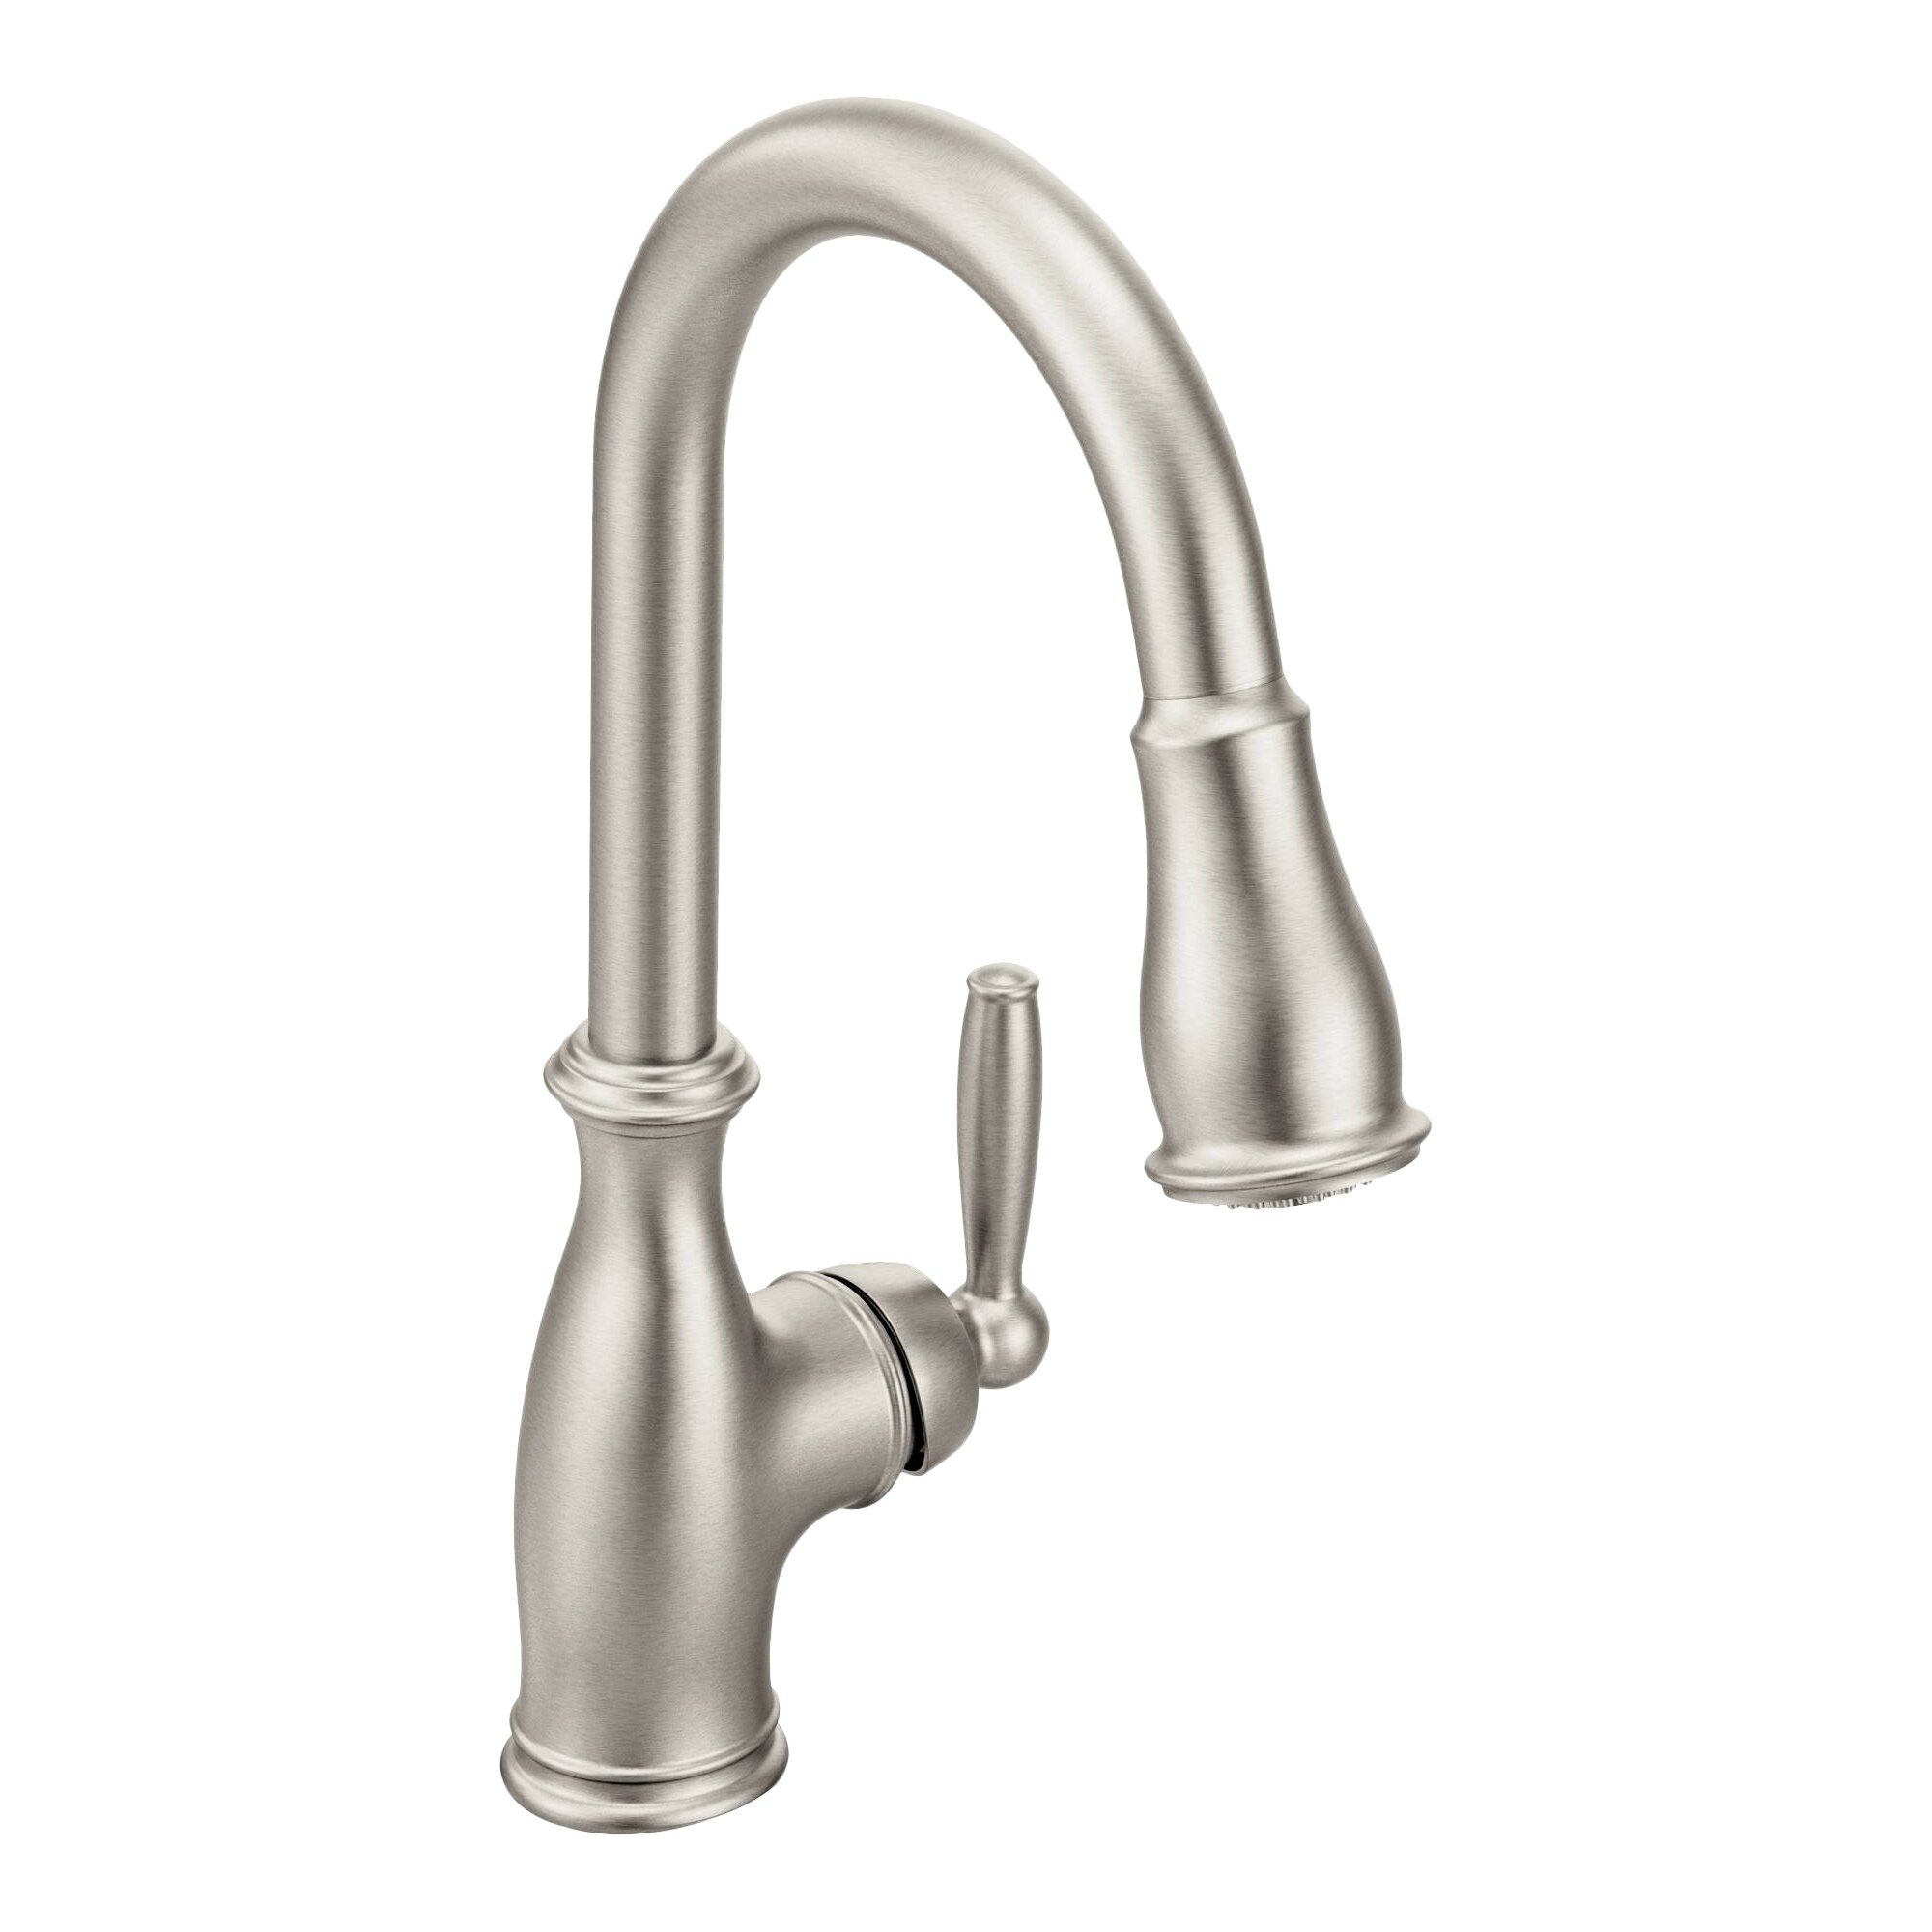 moen brantford single handle kitchen faucet amp reviews moen anabelle kitchen faucet ca87003srs review youtube